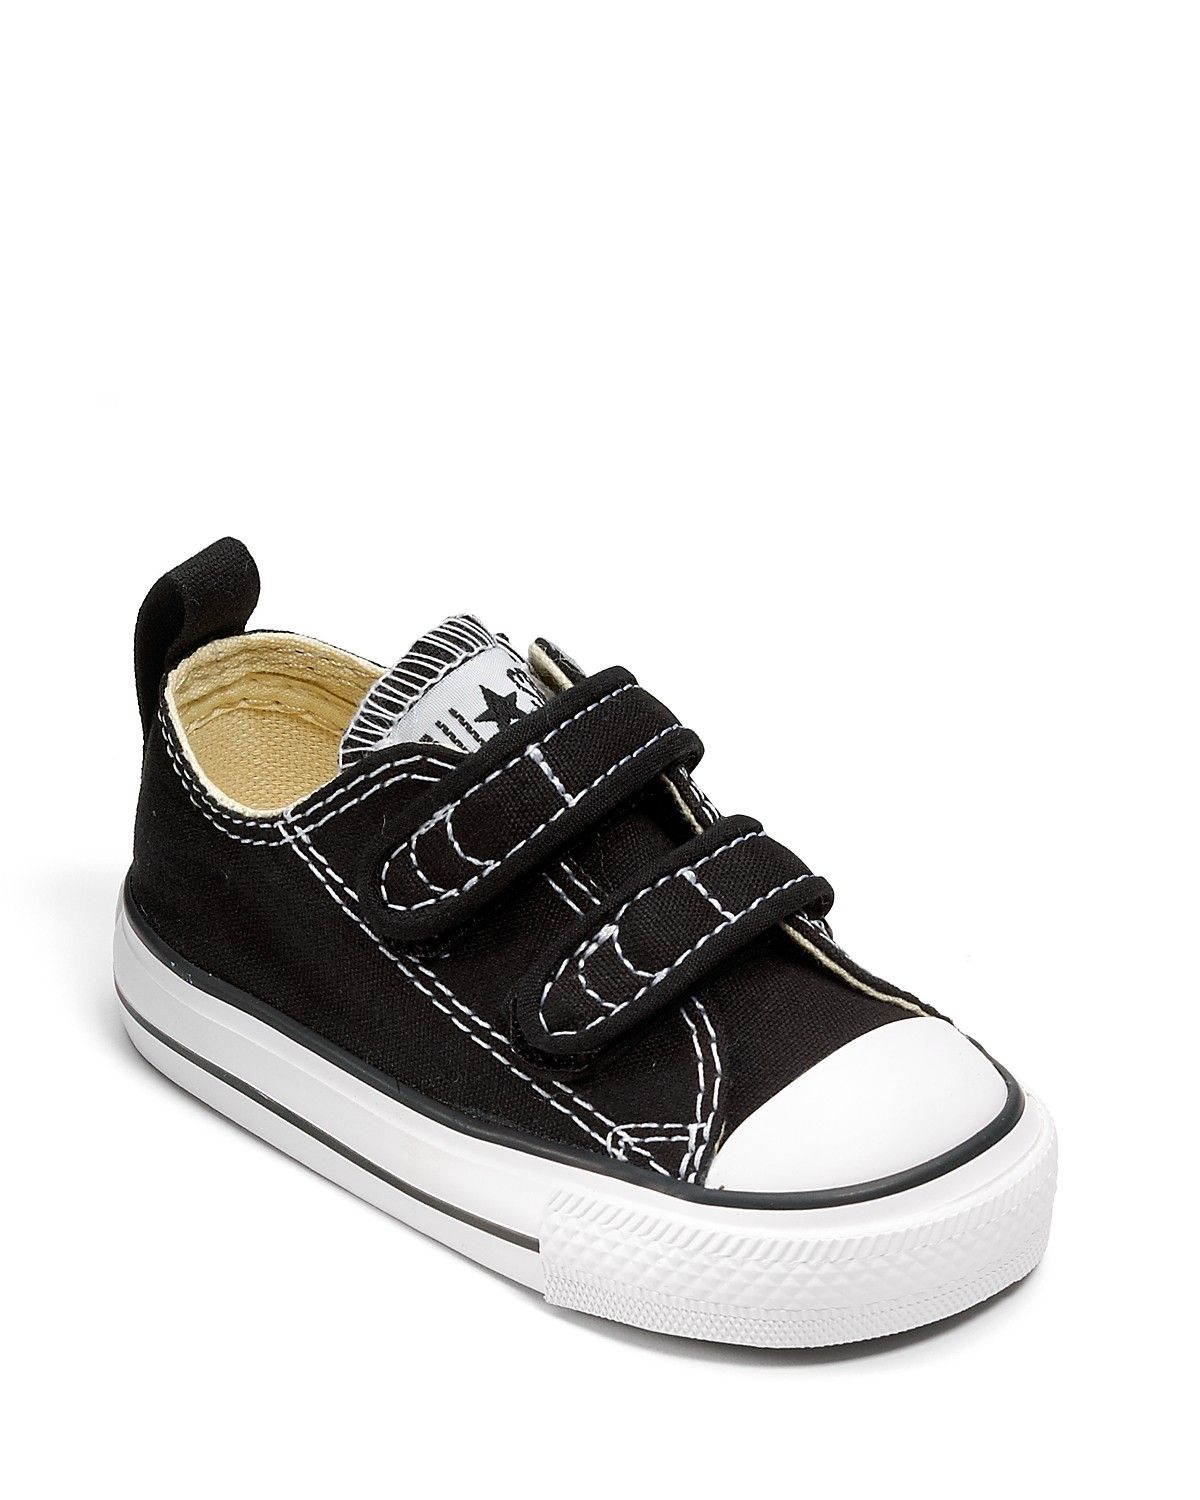 6bafe2f531a2 Converse Unisex Chuck Taylor All Star Double Velcro Strap Sneaker - Baby